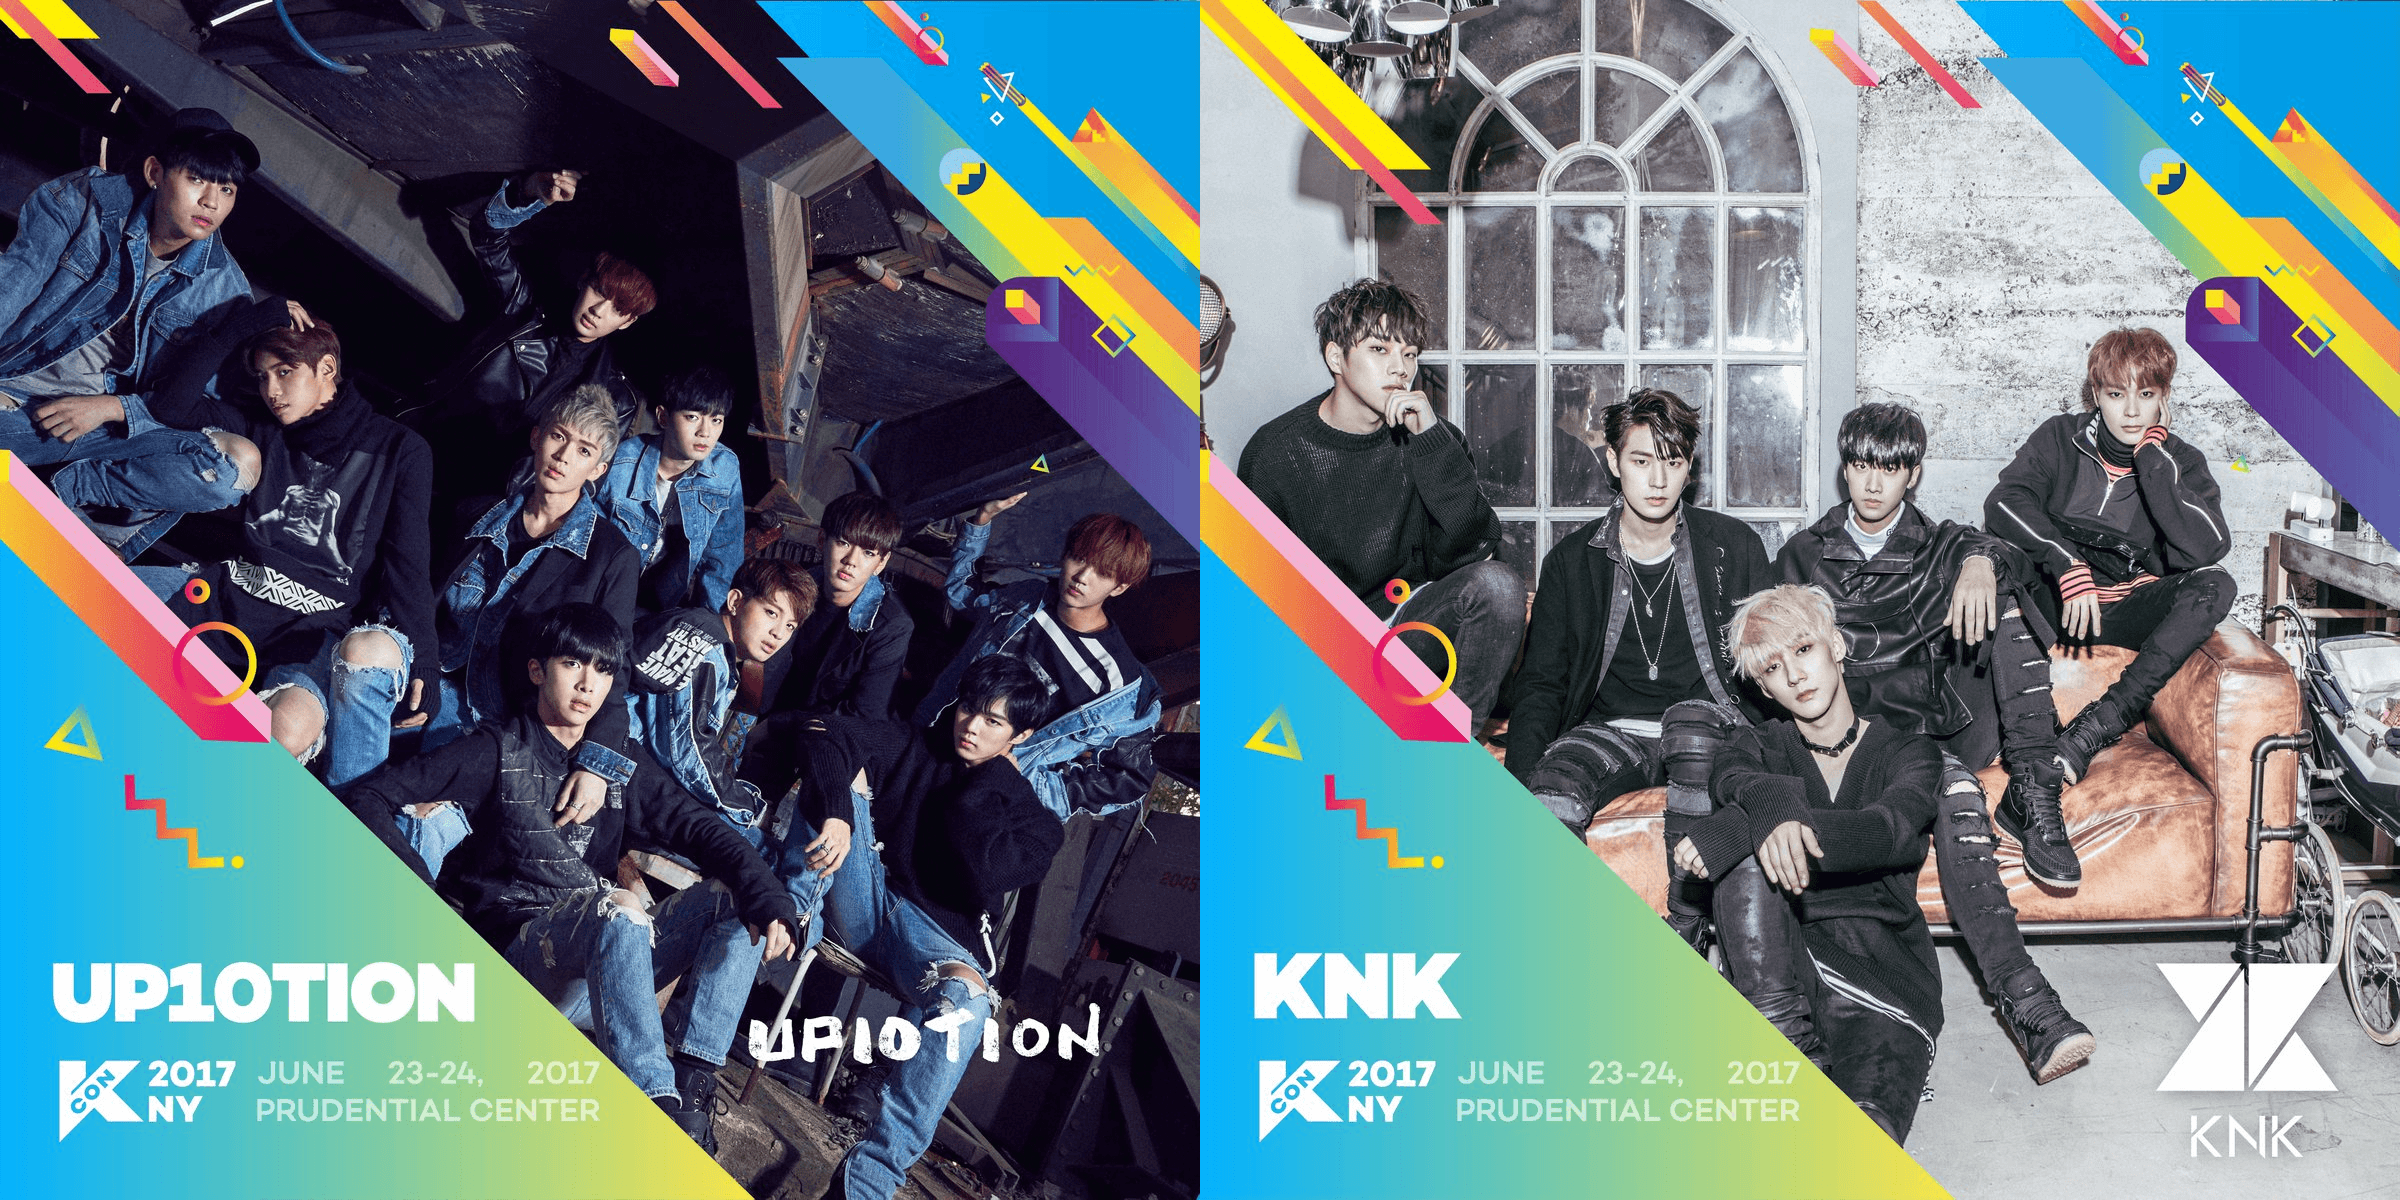 UP10TION and KNK announced for KCON New York 2017